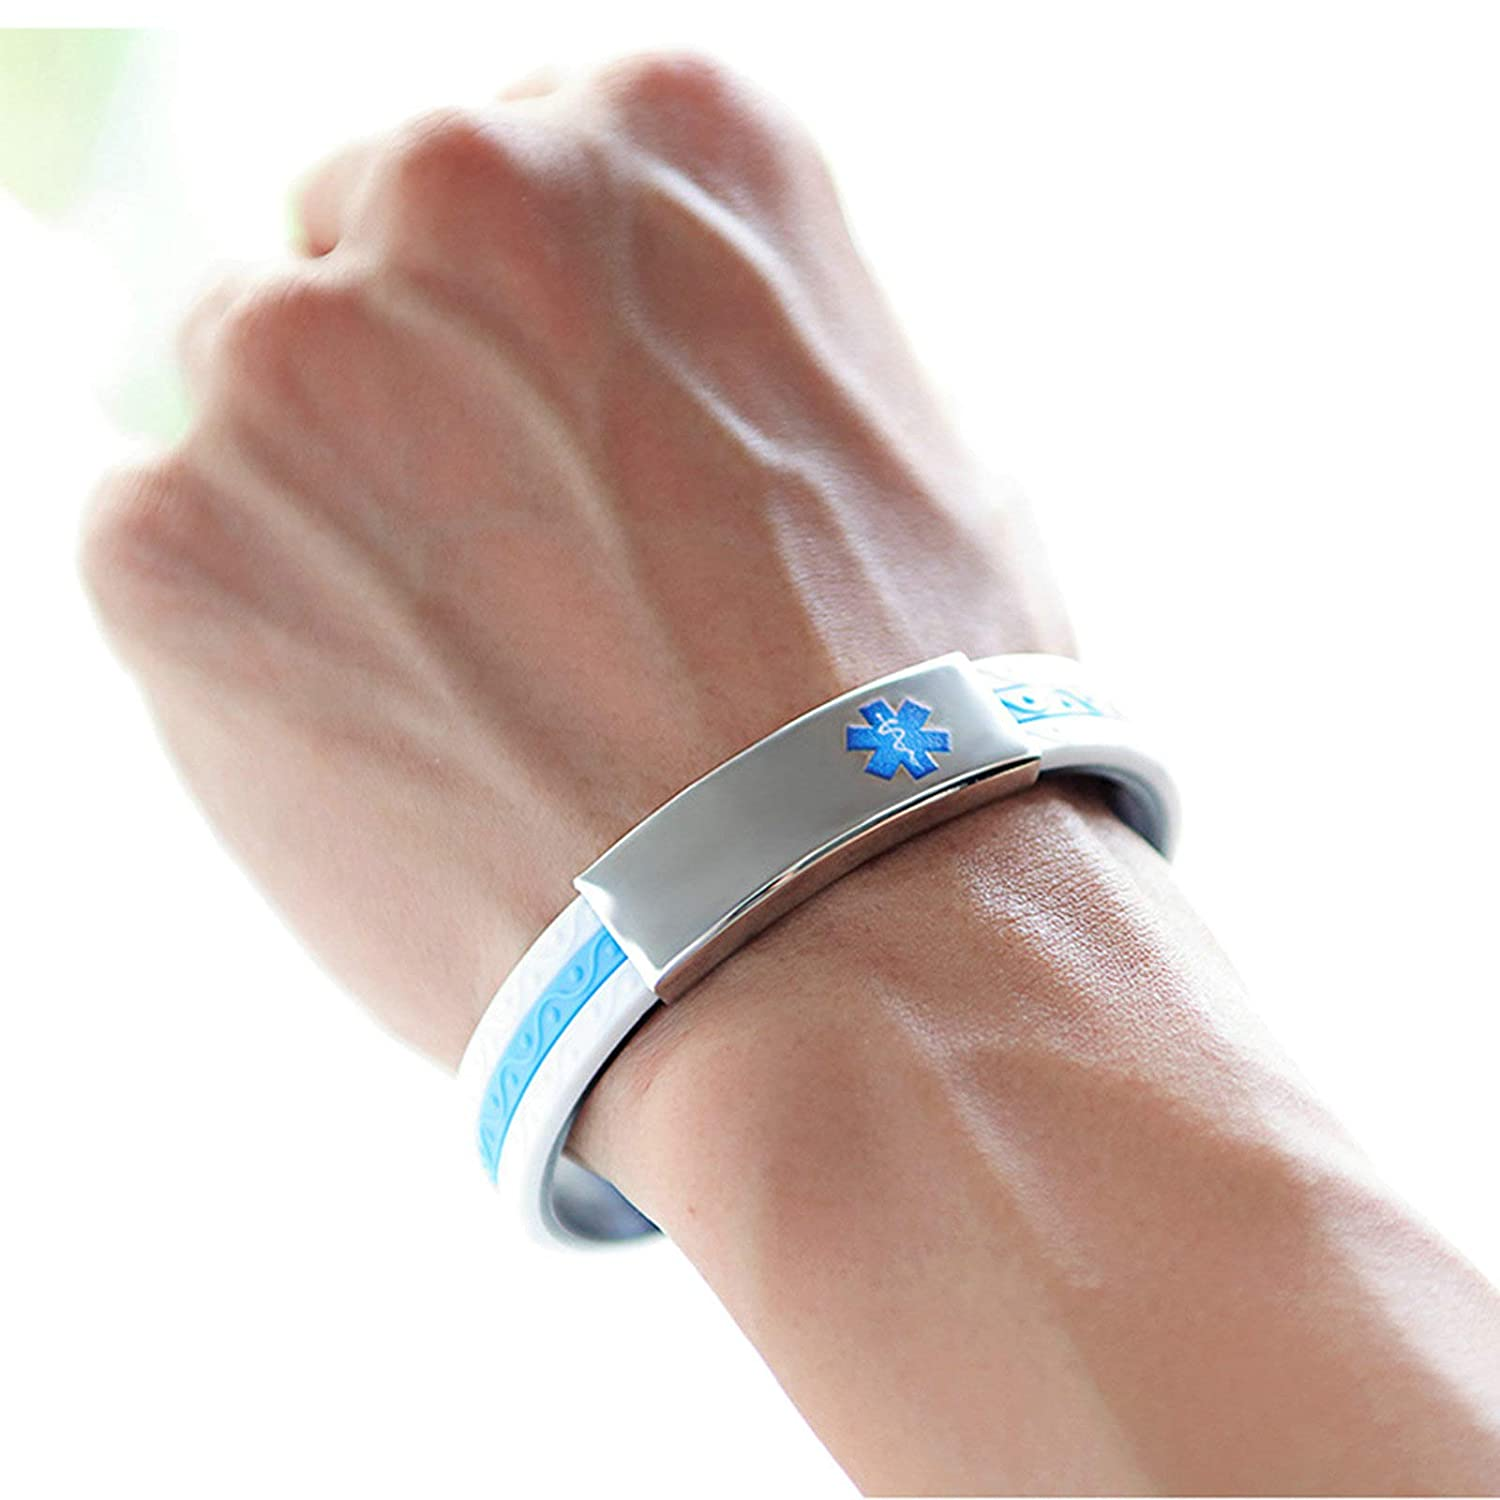 MoAndy Stainless Steel Silicone Medical Bracelet Wristband Emergency Bangle with Easy Clasp